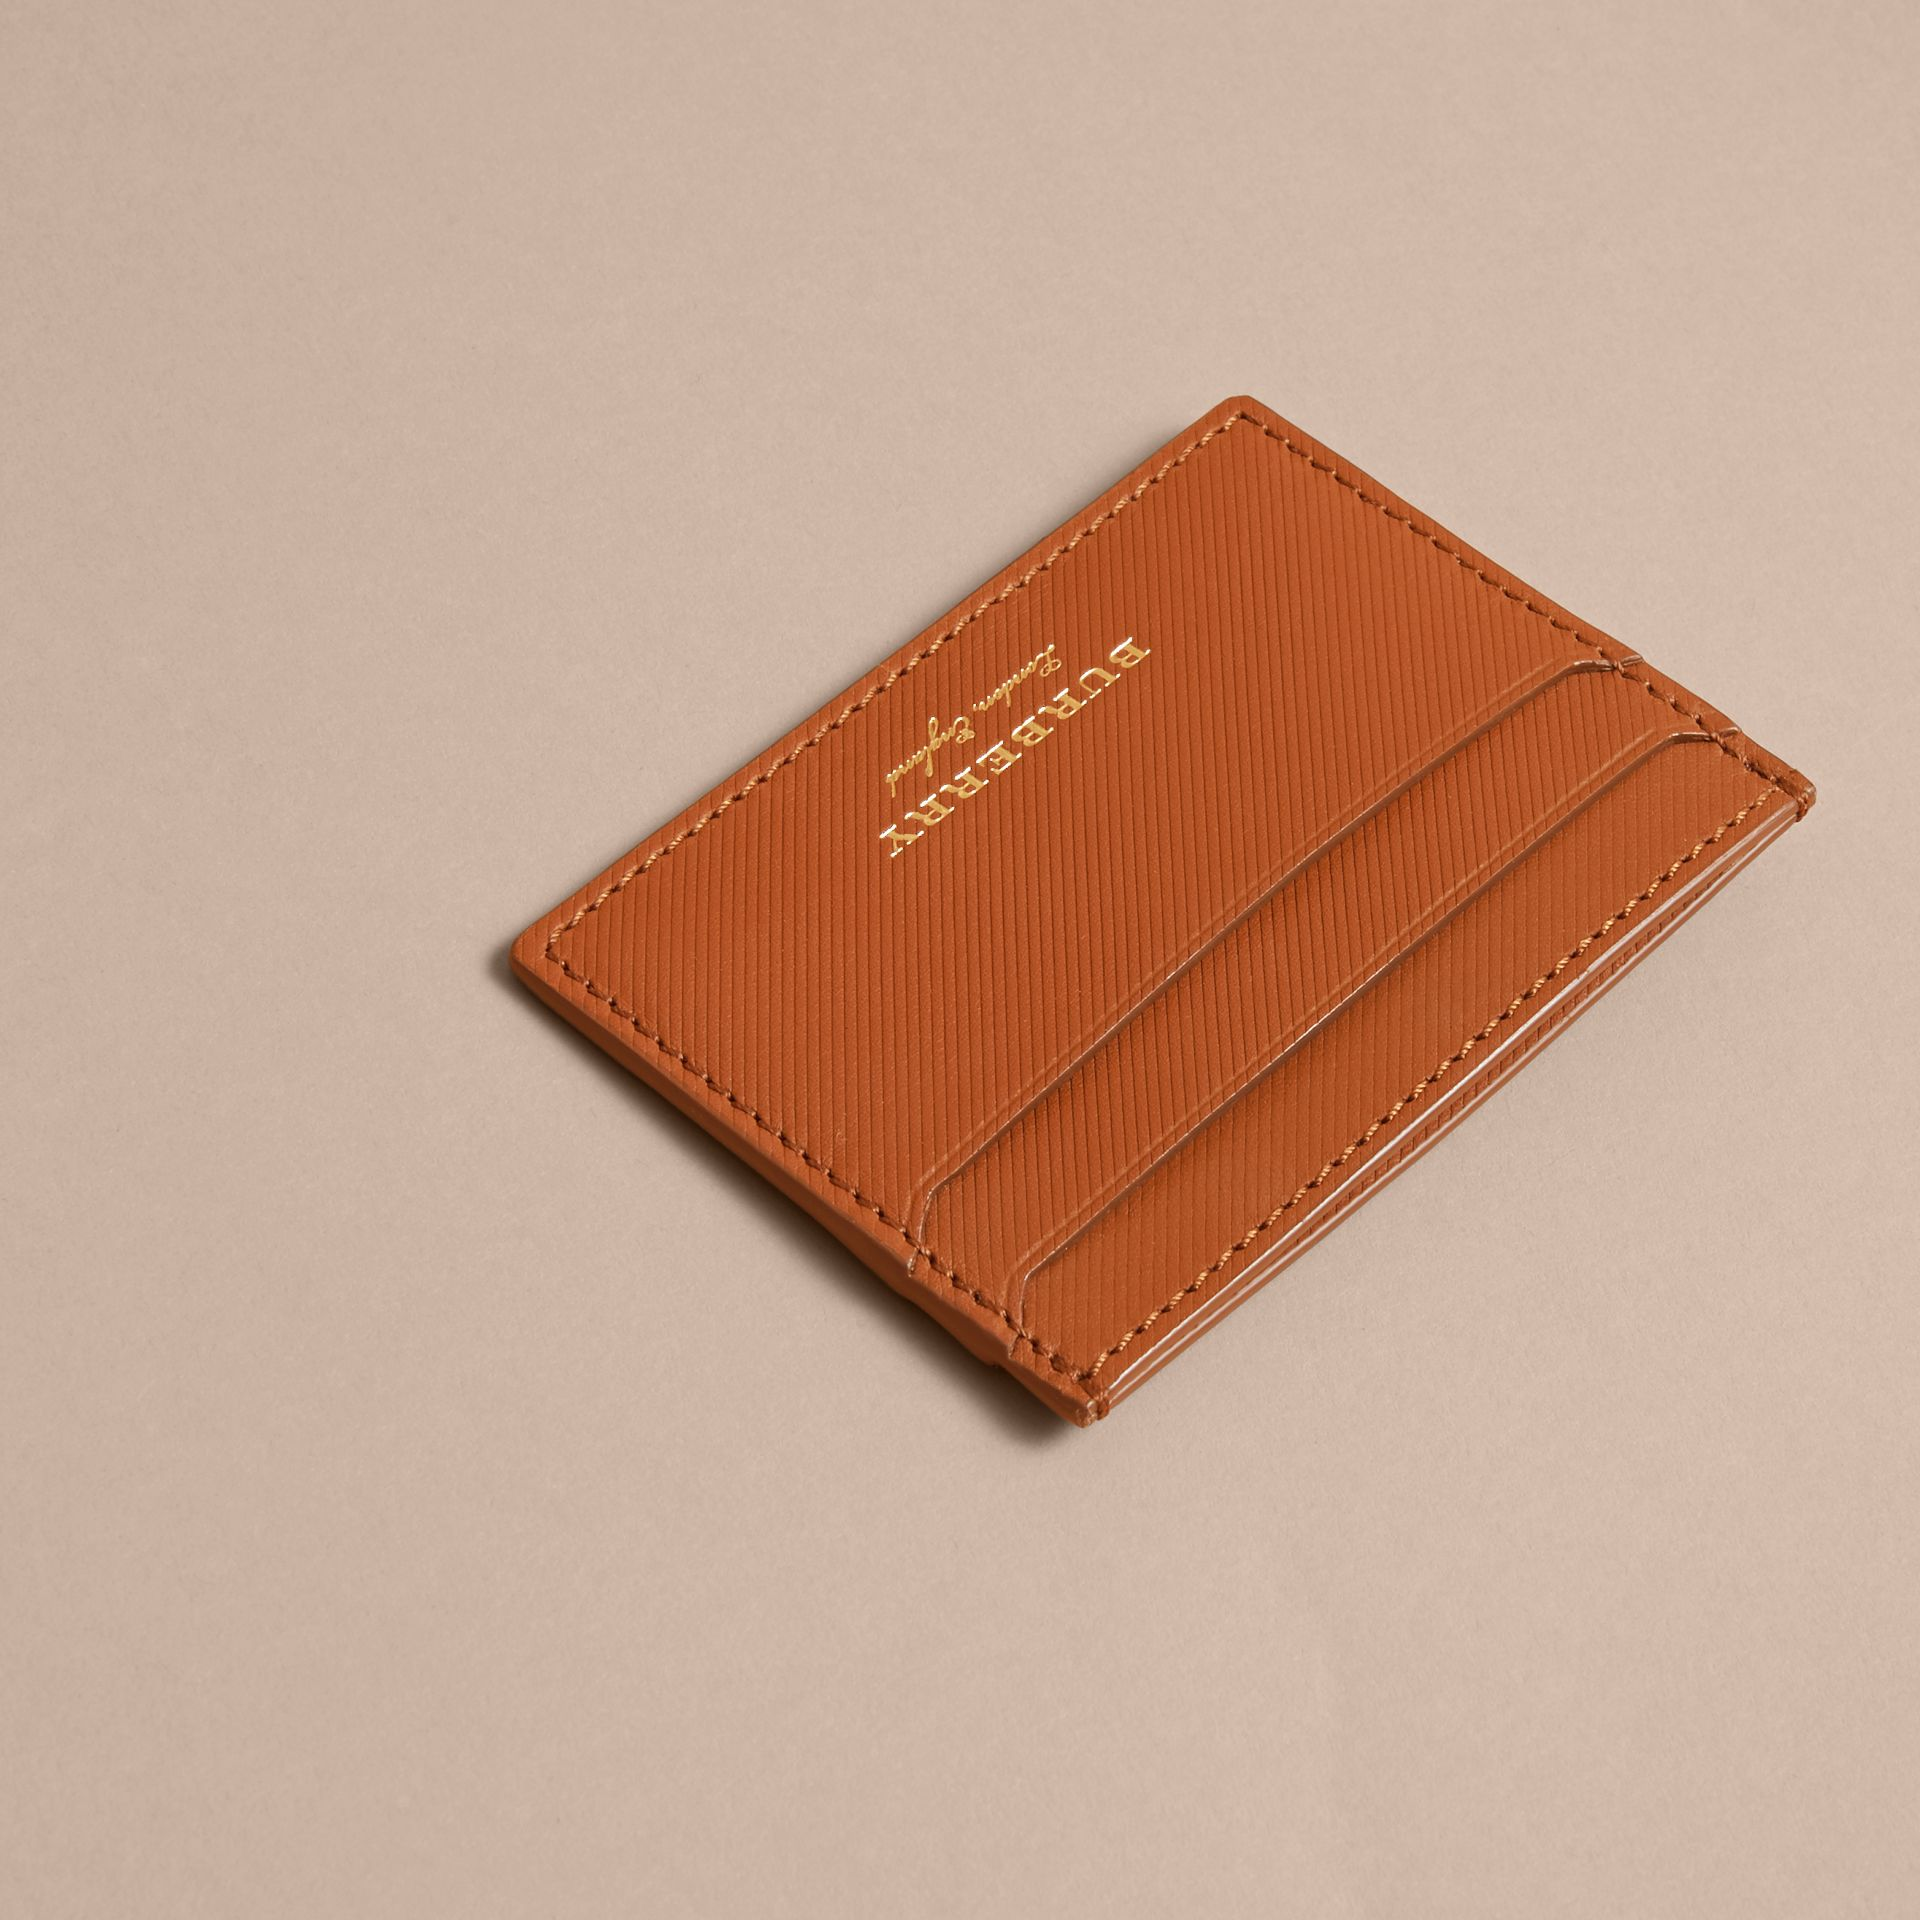 Trench Leather Card Case in Tan - Men | Burberry Singapore - gallery image 3